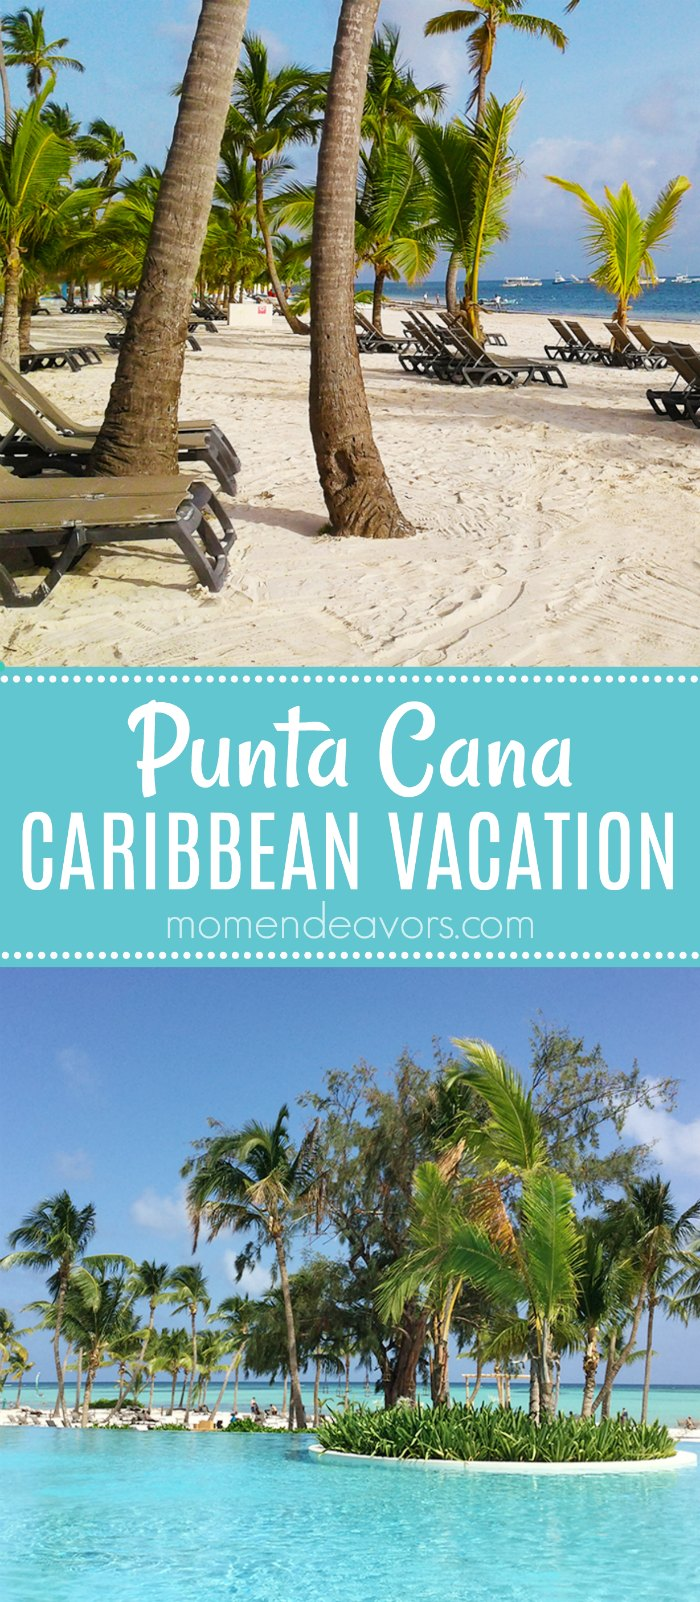 Take A Trip To Punta Cana In The Caribbean